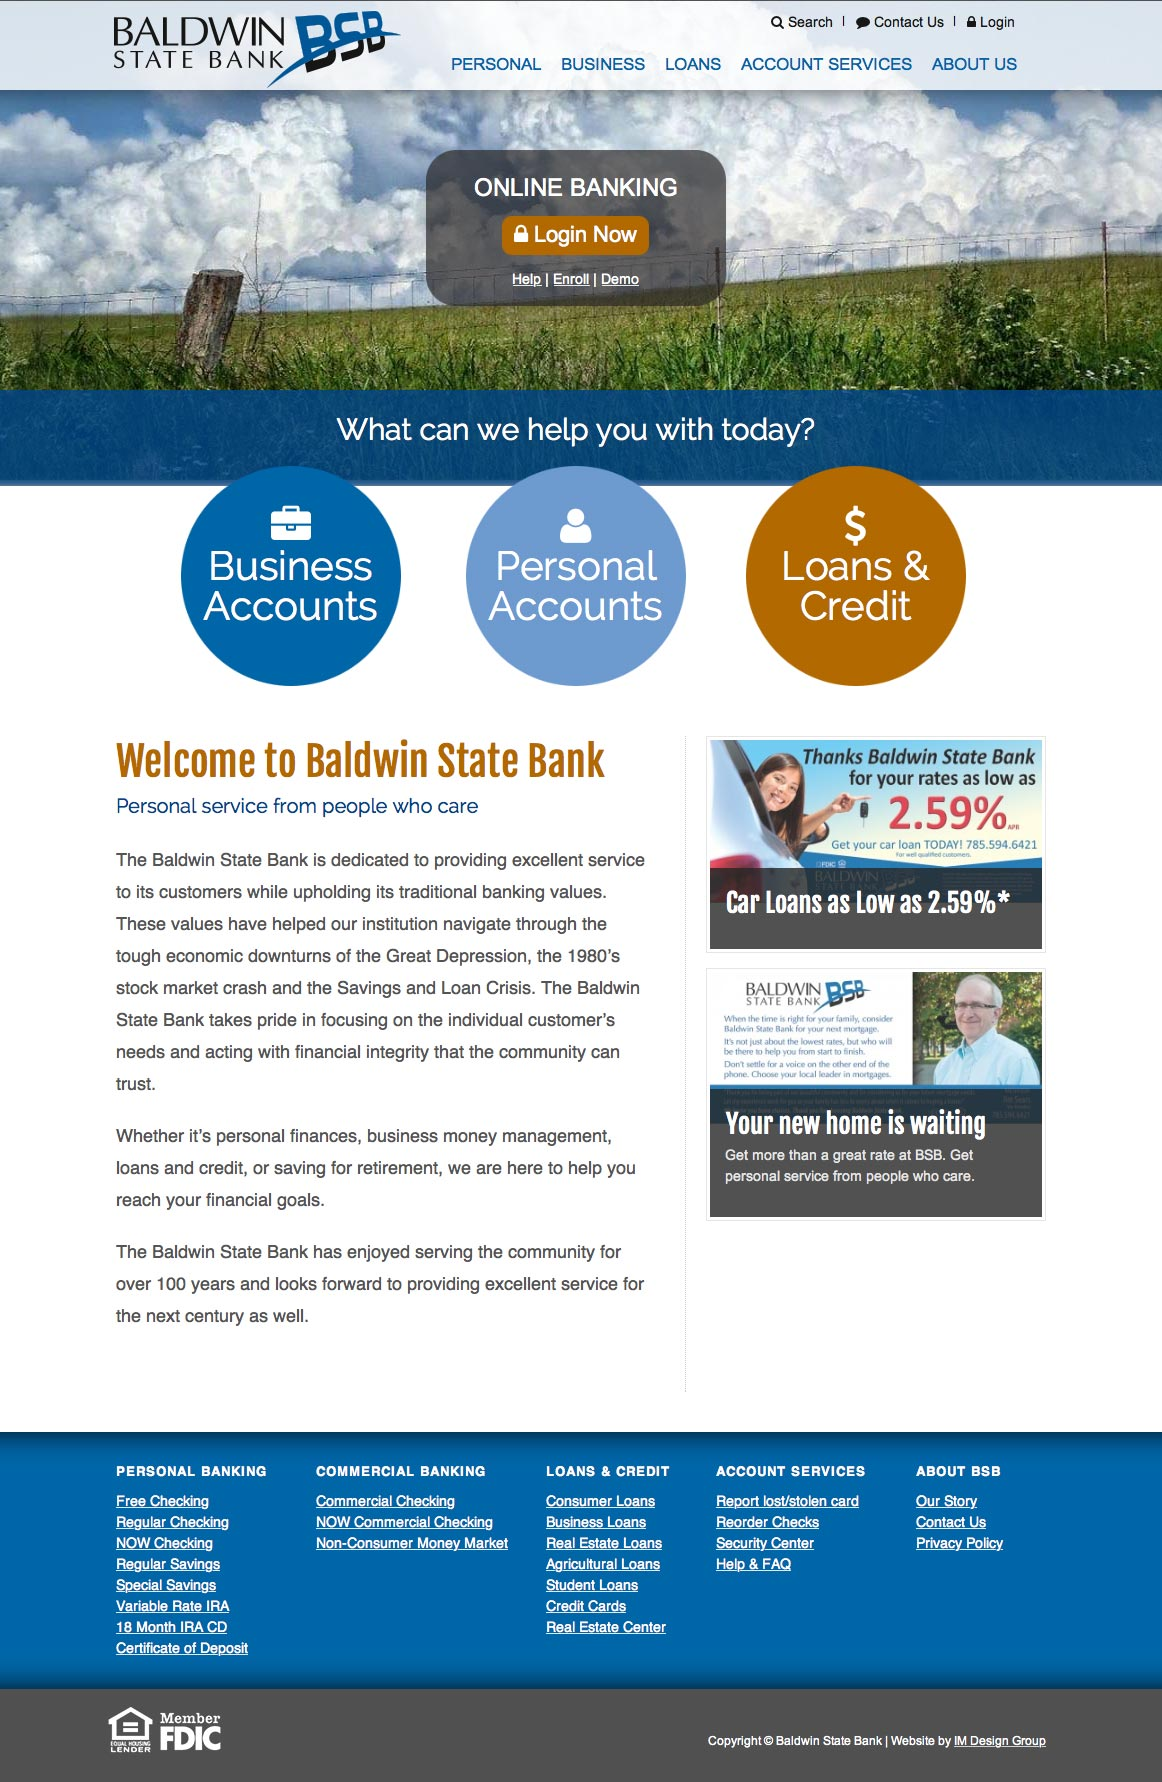 baldwin-state-bank-website